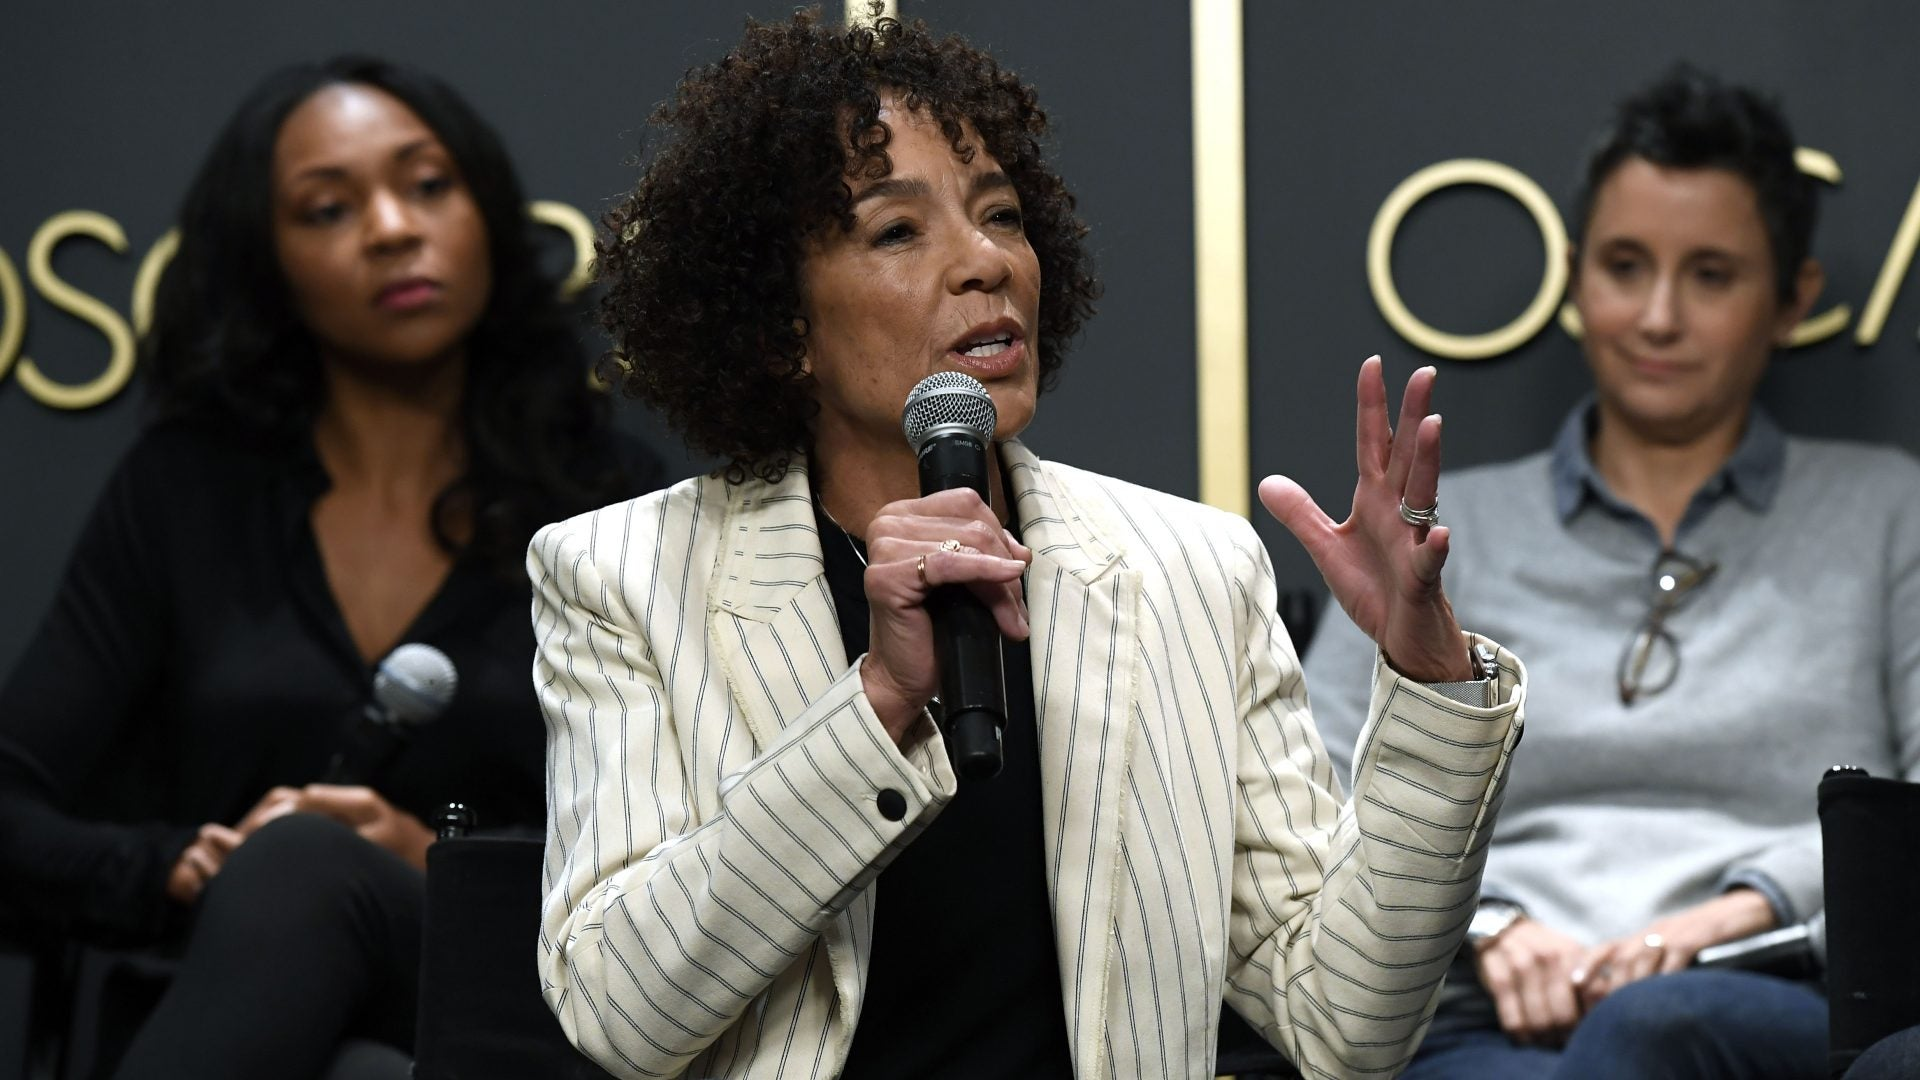 Stephanie Allain Details What To Expect From The Oscars 2020